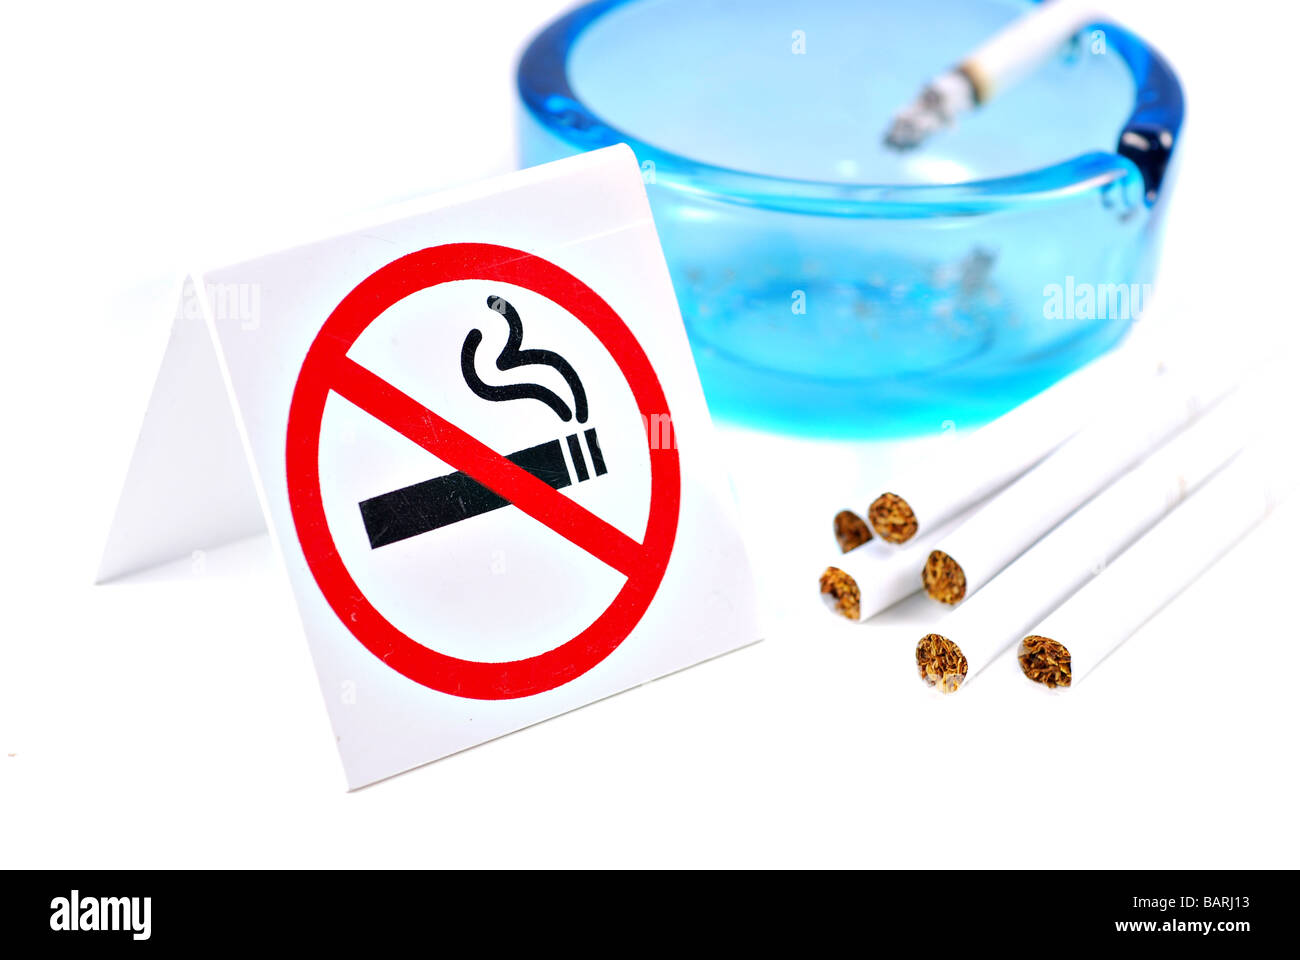 No Smoking sign with cigarettes and ashtray isolated on white background - Stock Image